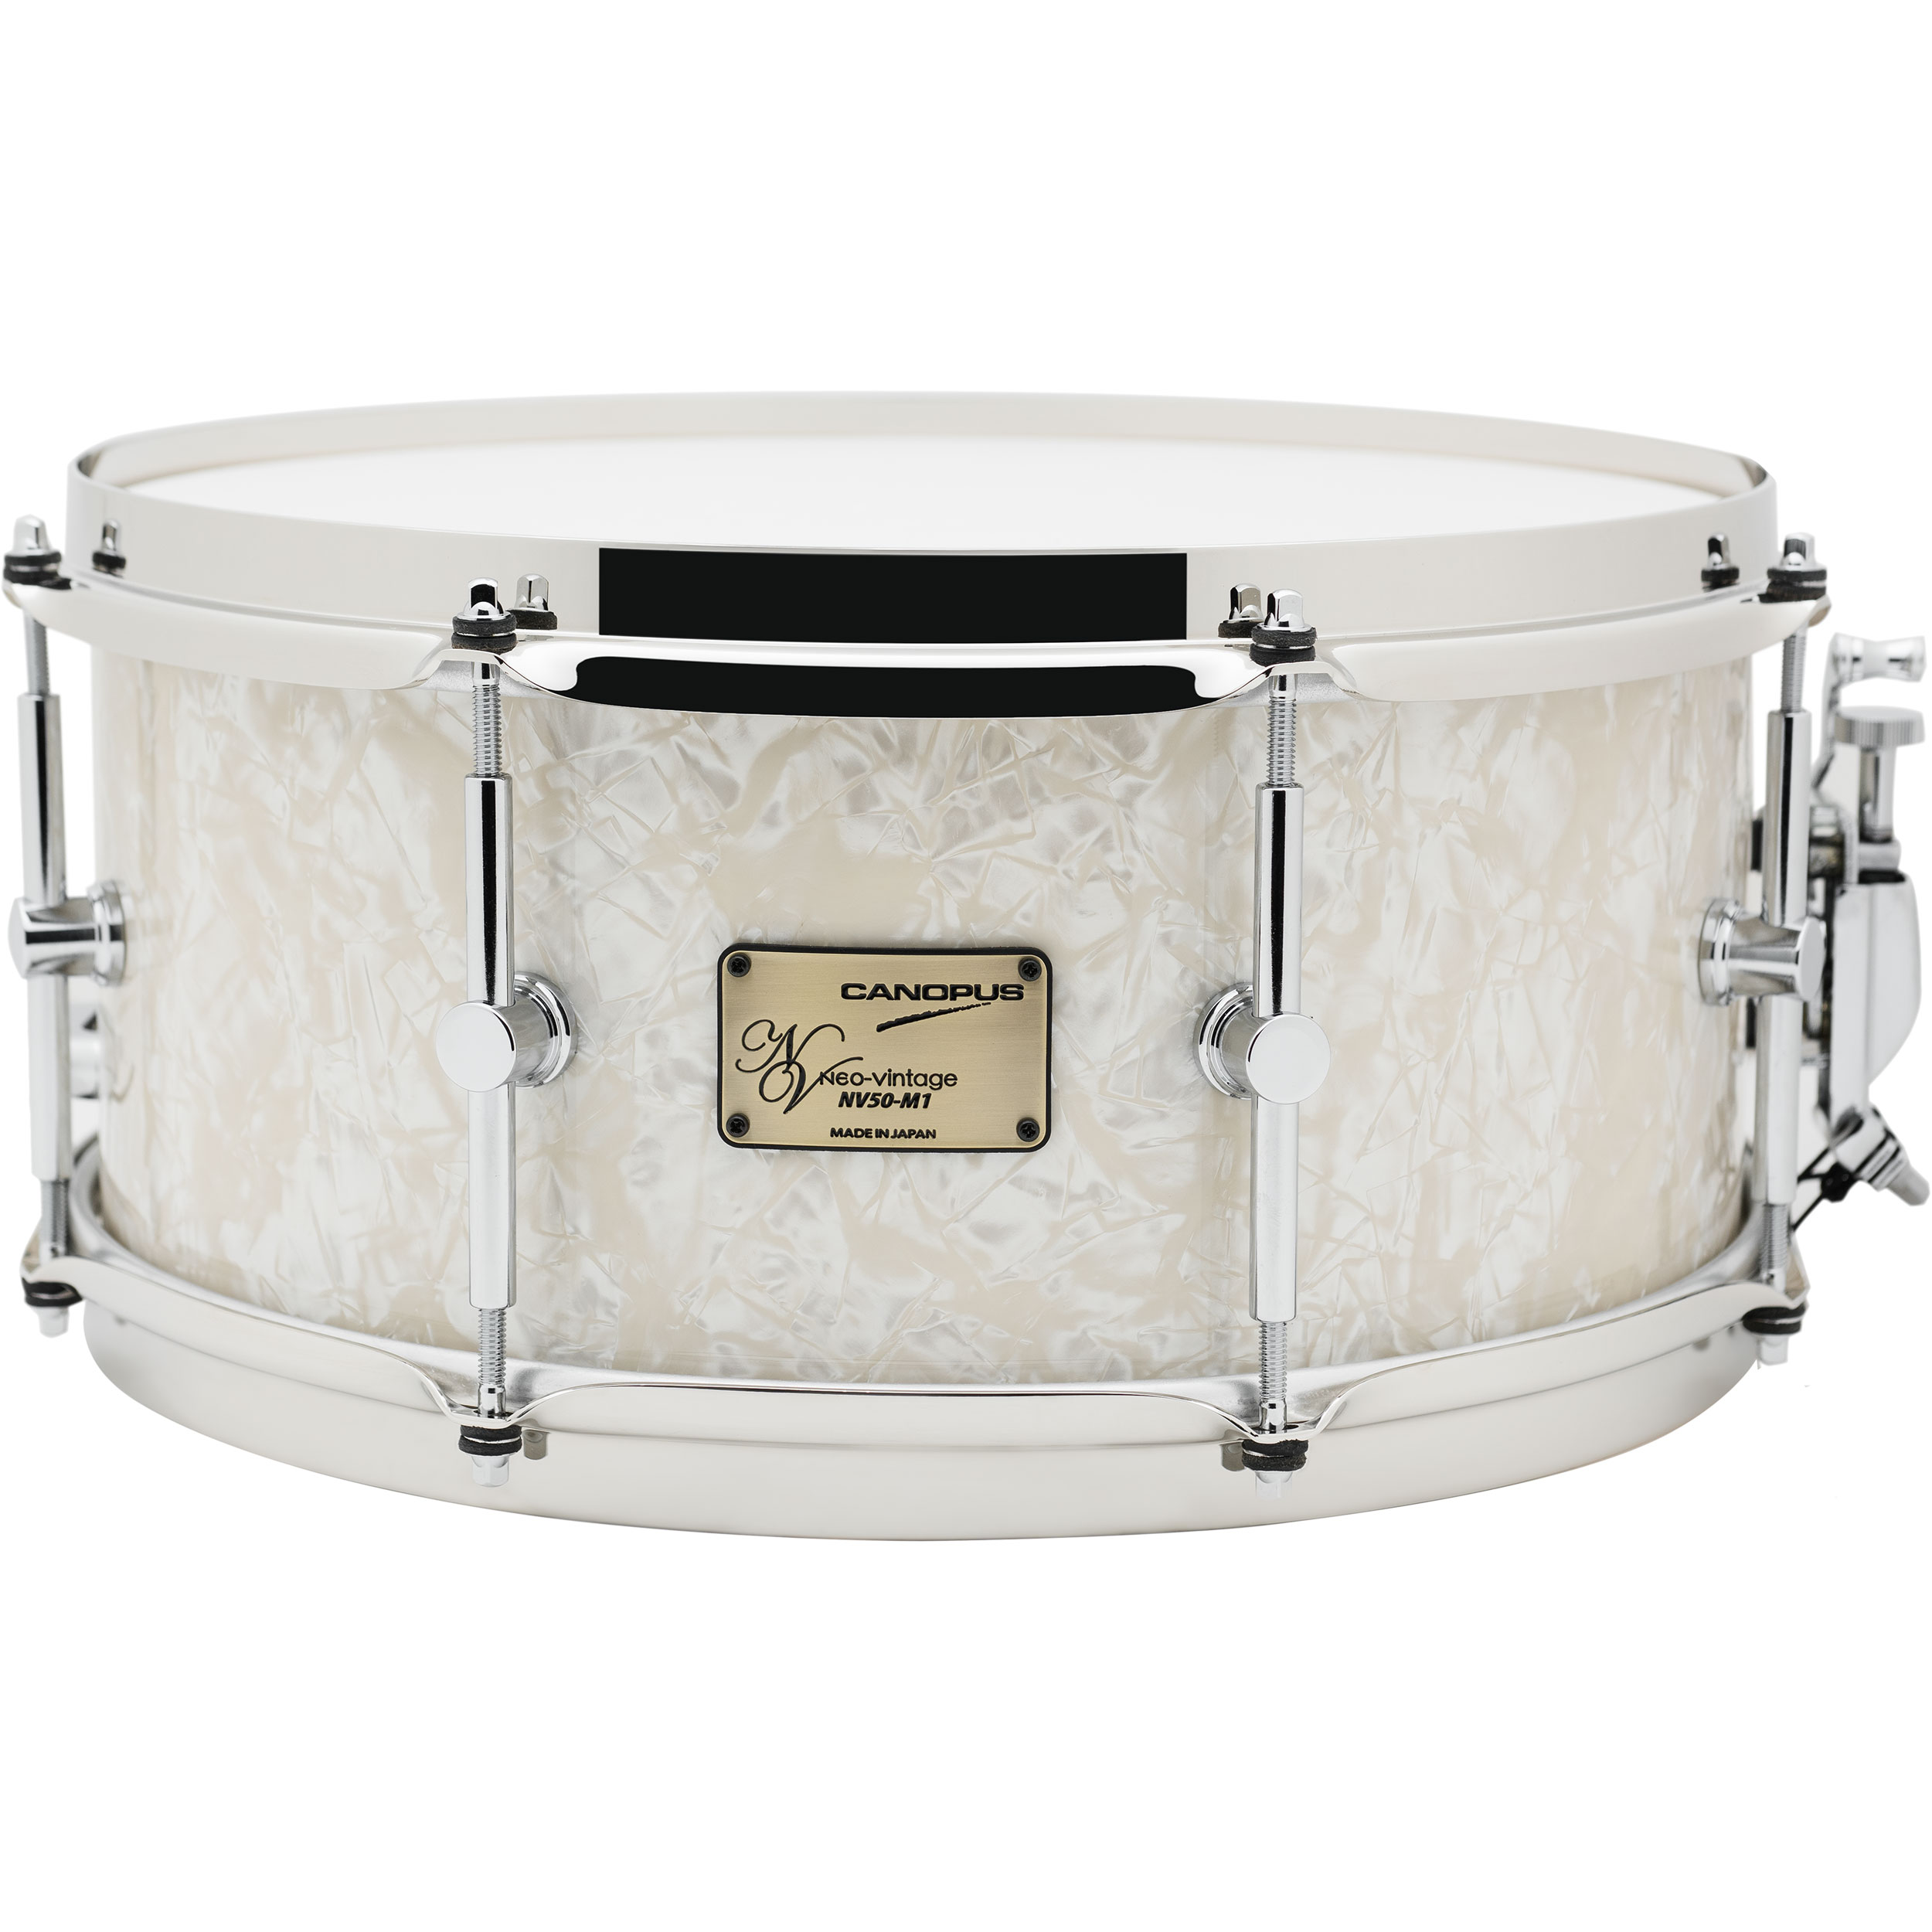 "Canopus 6.5"" x 14"" Neo-Vintage M1 Snare Drum with Straight Brass Hoops in Vintage Pearl"